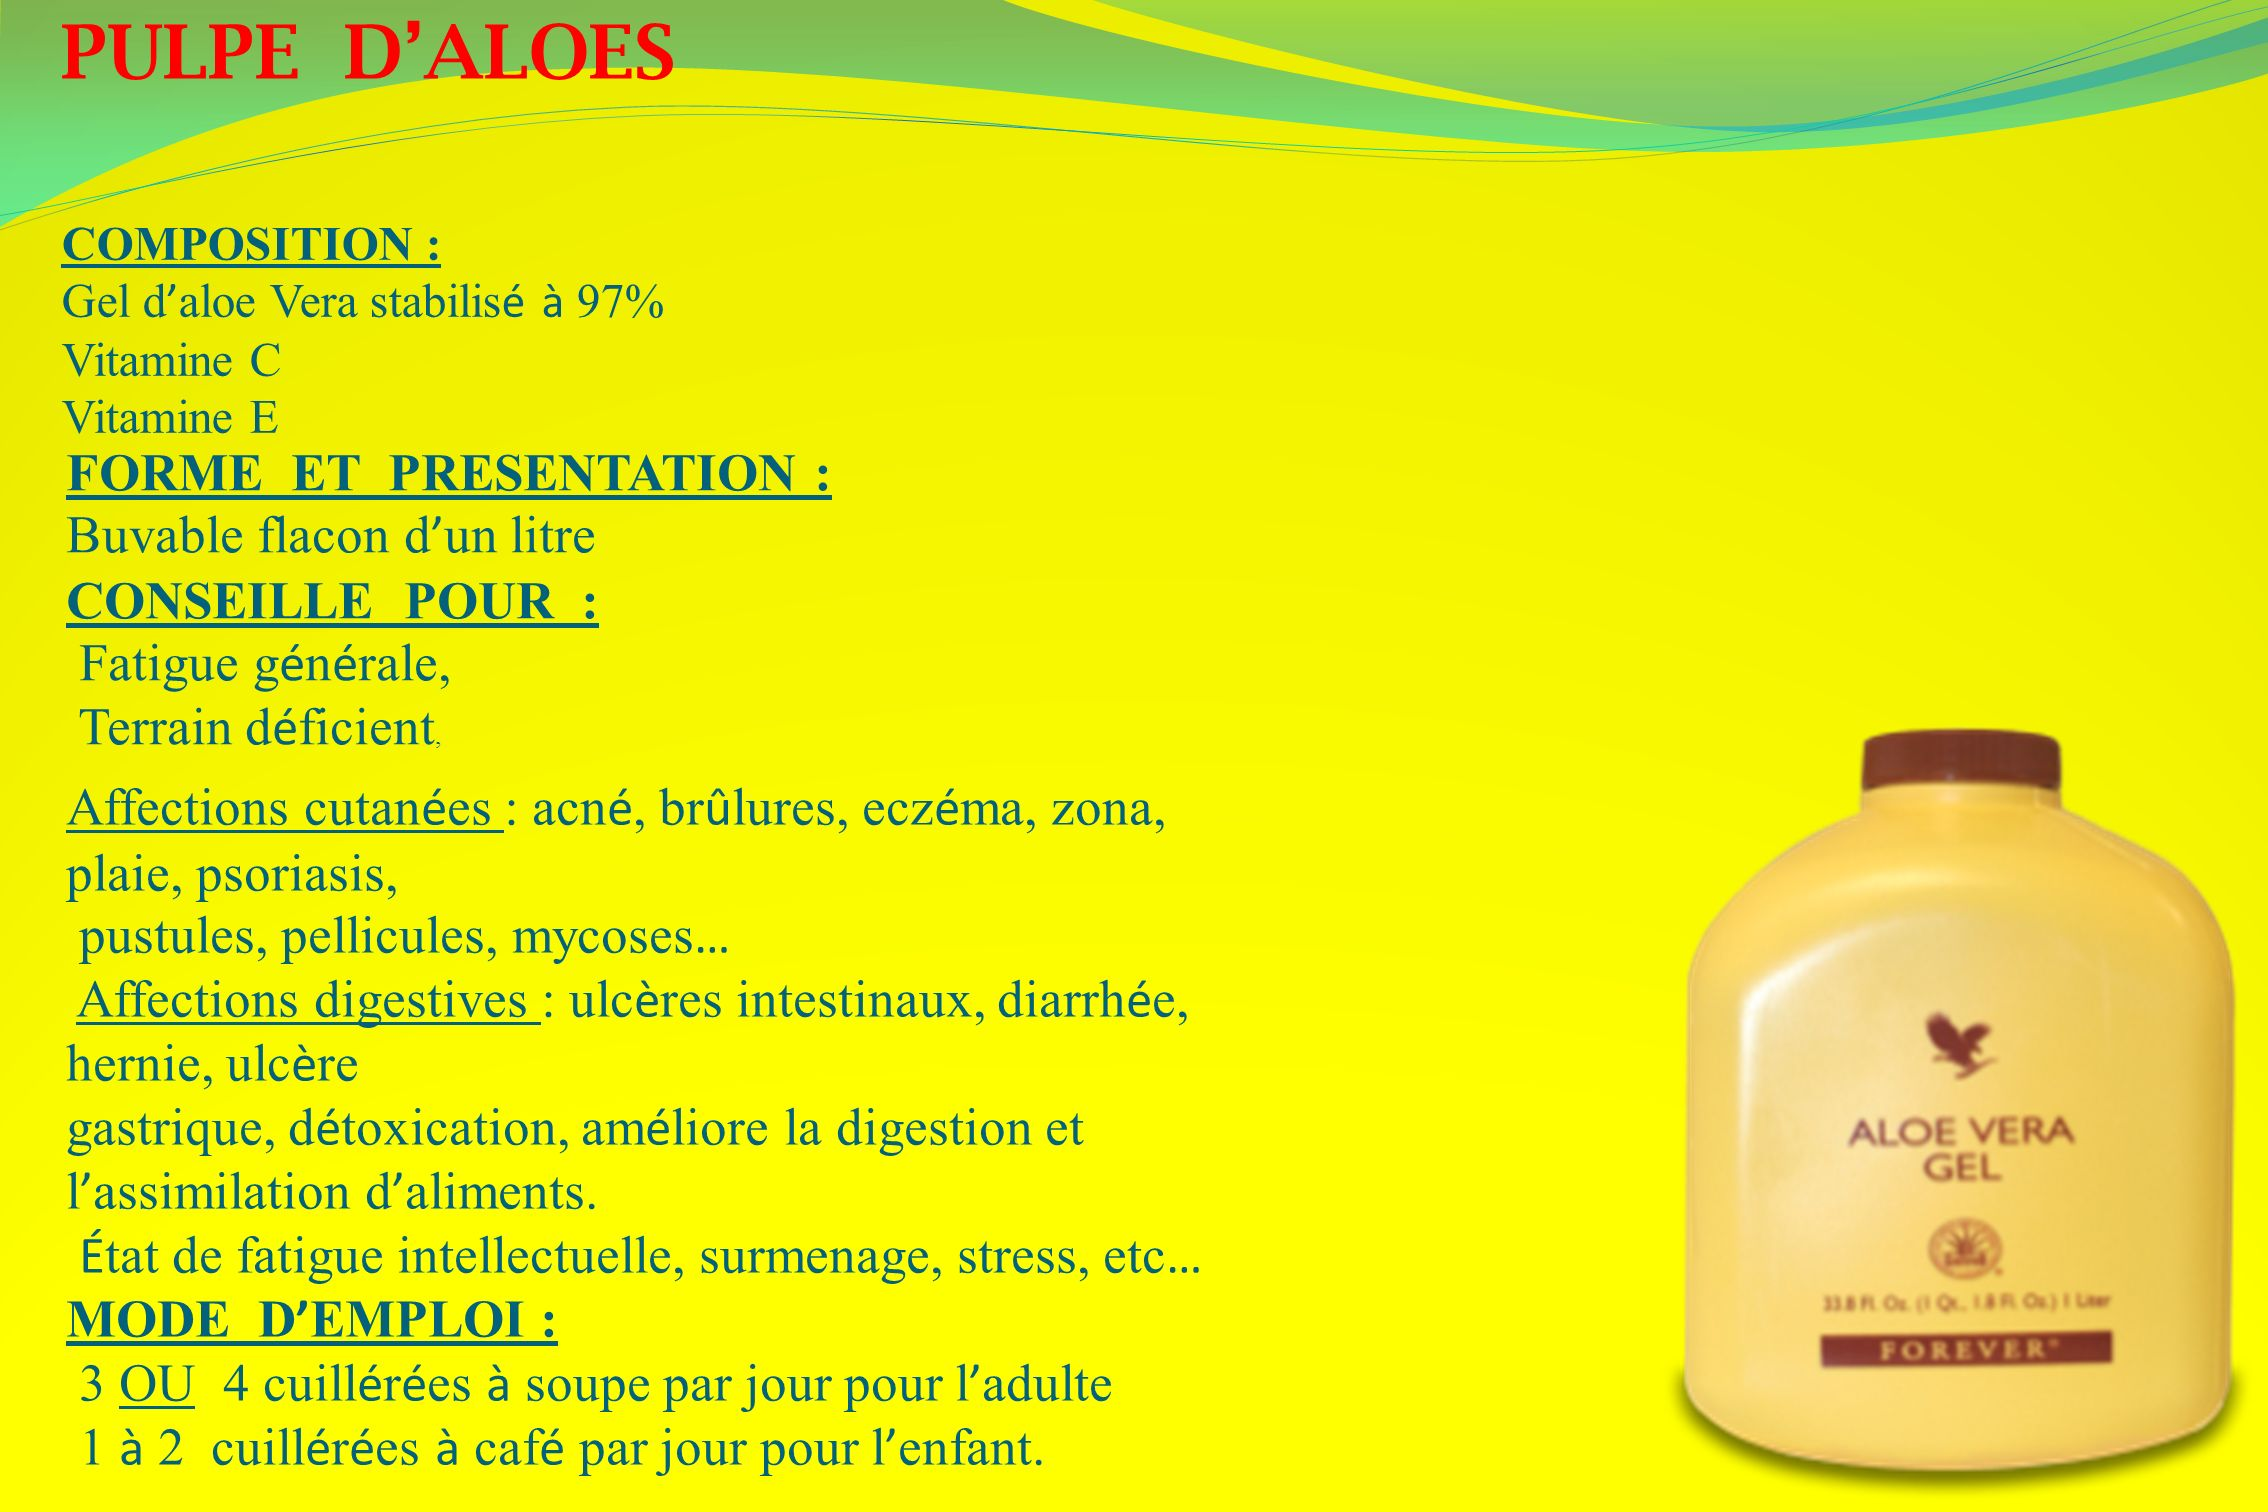 PULPE D'ALOES FORME ET PRESENTATION : Buvable flacon d'un litre